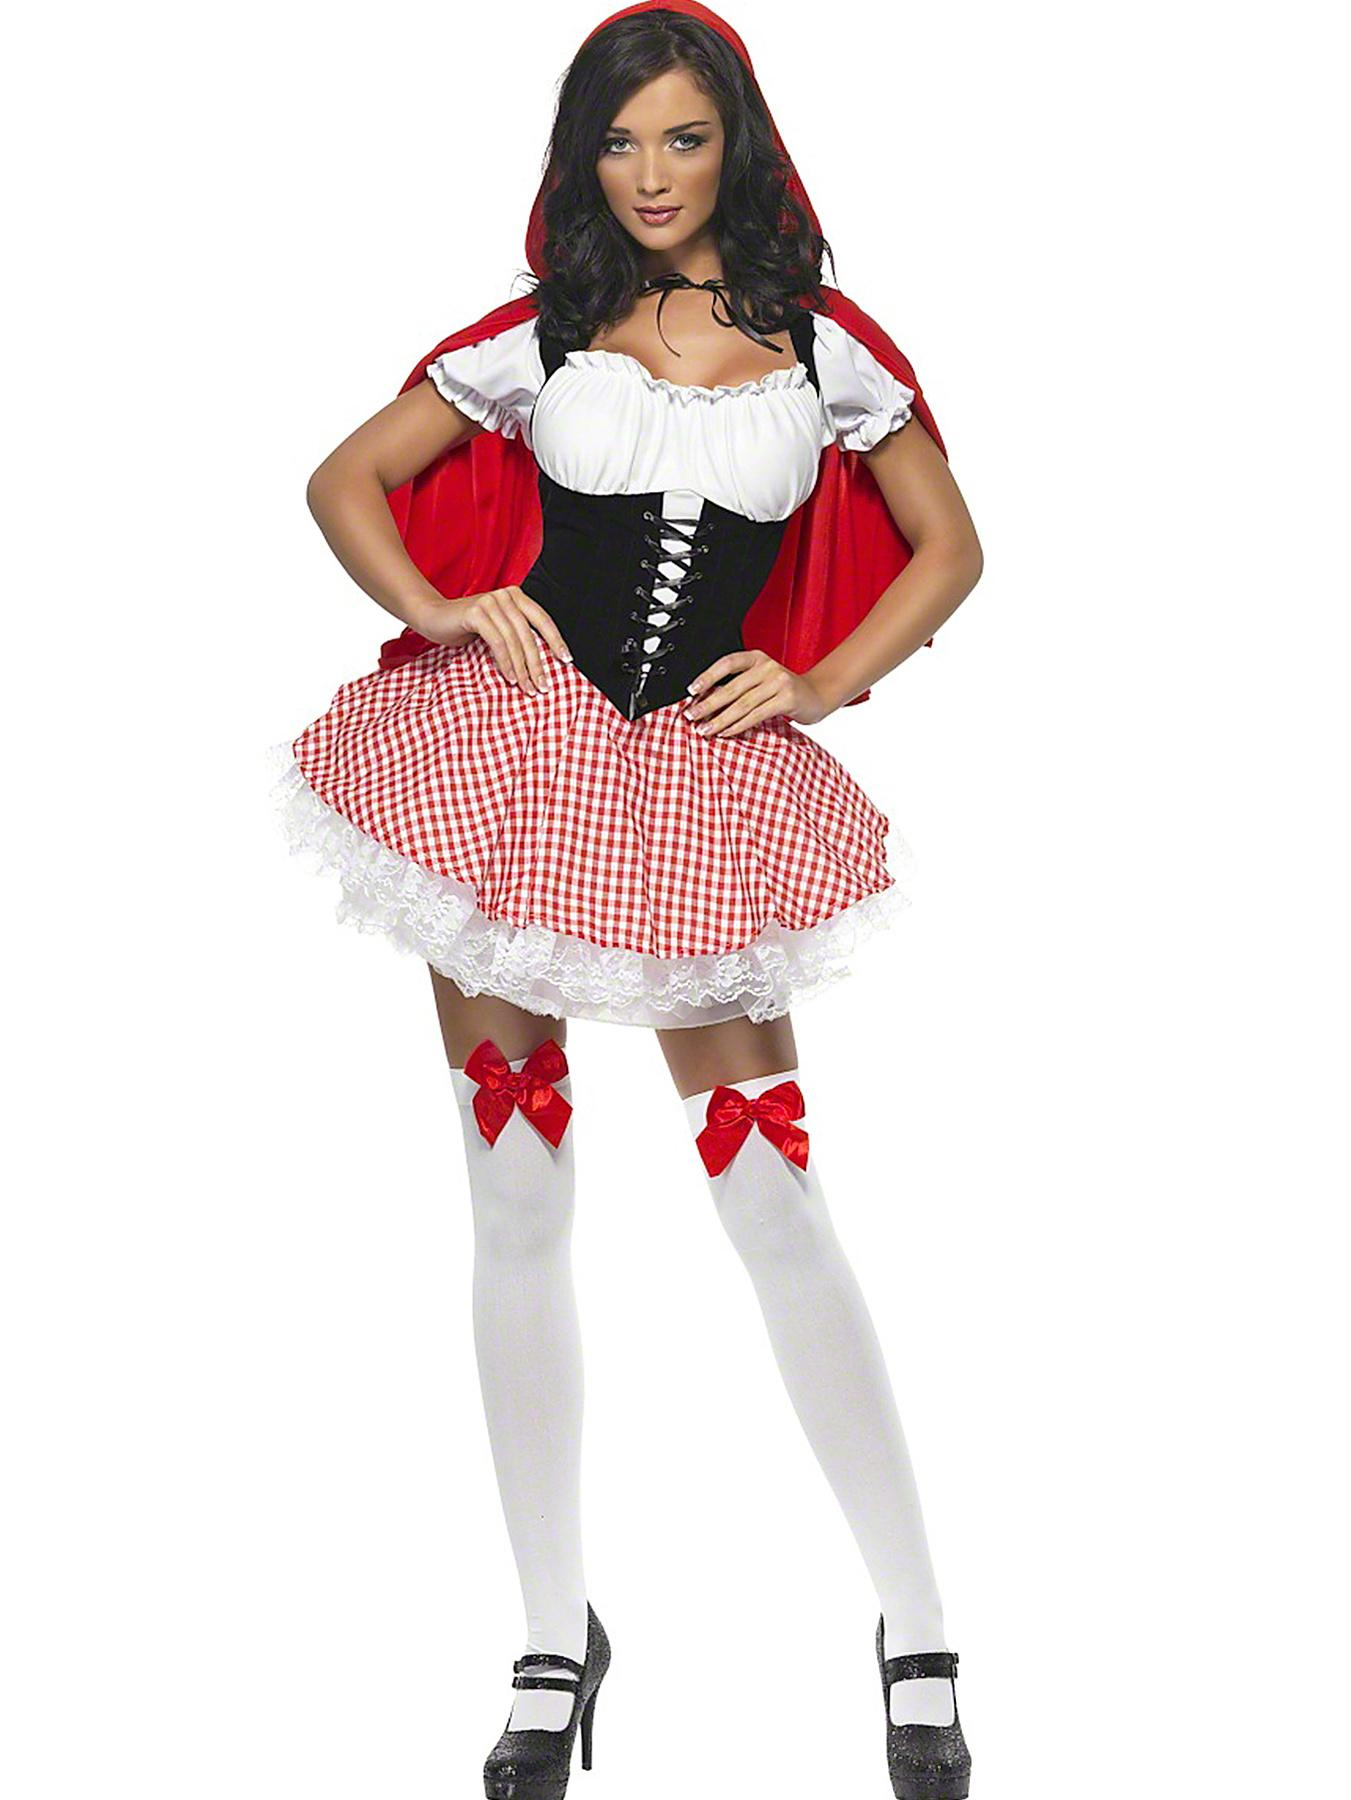 Perfect Be The Sassiest Mouse From The Clubhouse With This Sassy Minnie Mouse Womens  Dress With Red And White Polka Dot Skirt And Attached White Bow Belt The Hem Of The Skirt Features A Thin Strip Of Black Tulle Top Off The Costume With The